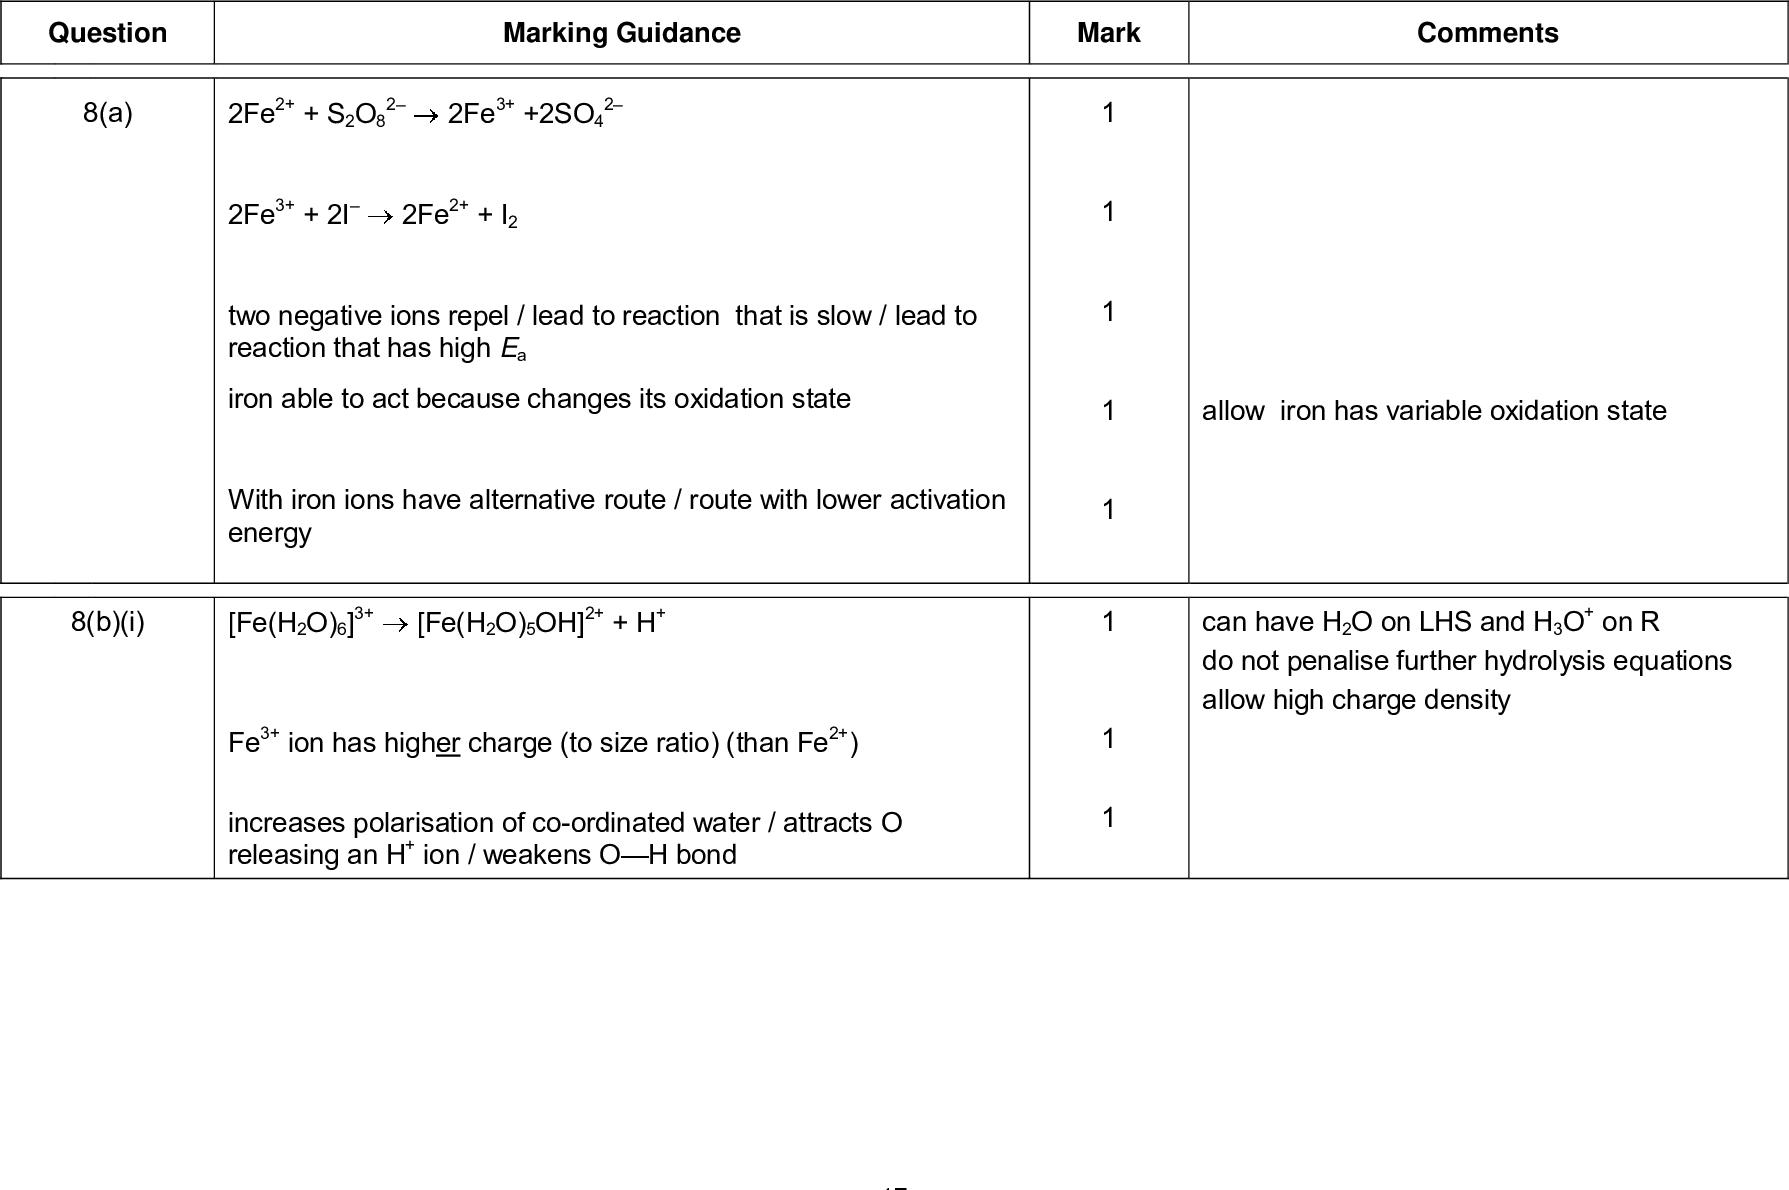 mark scheme general certificate of education a level chemistry unit energetics redox and inorganic chemistry june marking guidance mark comments question a allow iron has variable oxidation state can have h o on lhs and h o on r do not penalise further hydrolysis equations allow high charge density fe i fe so fe s o fe i two negative ions repel lead to reaction that is slow lead to reaction that has high ea iron able to act because changes its oxidation state with iron ions have alternative route route with lower activation energy b i fe h o oh h fe h o fe ion has higher charge to size ratio than fe increases polarisation of co ordinated water attracts o releasing an h ion weakens o h bond mark scheme general certificate of education a level chemistry unit energetics redox and inorganic chemistry june b ii c h fe cr h o fe cr o moles dichromate moles iron mass iron by mass of iron brown precipitate solid bubbles of gas effervescence fizz fe h o co fe h o oh co h o ums conversion calculator www aqa org uk umsconversion or mol fe ii react with mol dichromate if factor of not used max for m m and m e g gives ans to scores m also scores m mark is for moles of iron allow use of for iron answer must be to at least sig figures allow to mark is for mass of iron allow red brown orange solid not red or yellow solid allow gas evolved given off do not allow just gas or co or co gas allow fe h o co h o use of na co e g na co conseq na fe oh co conseq